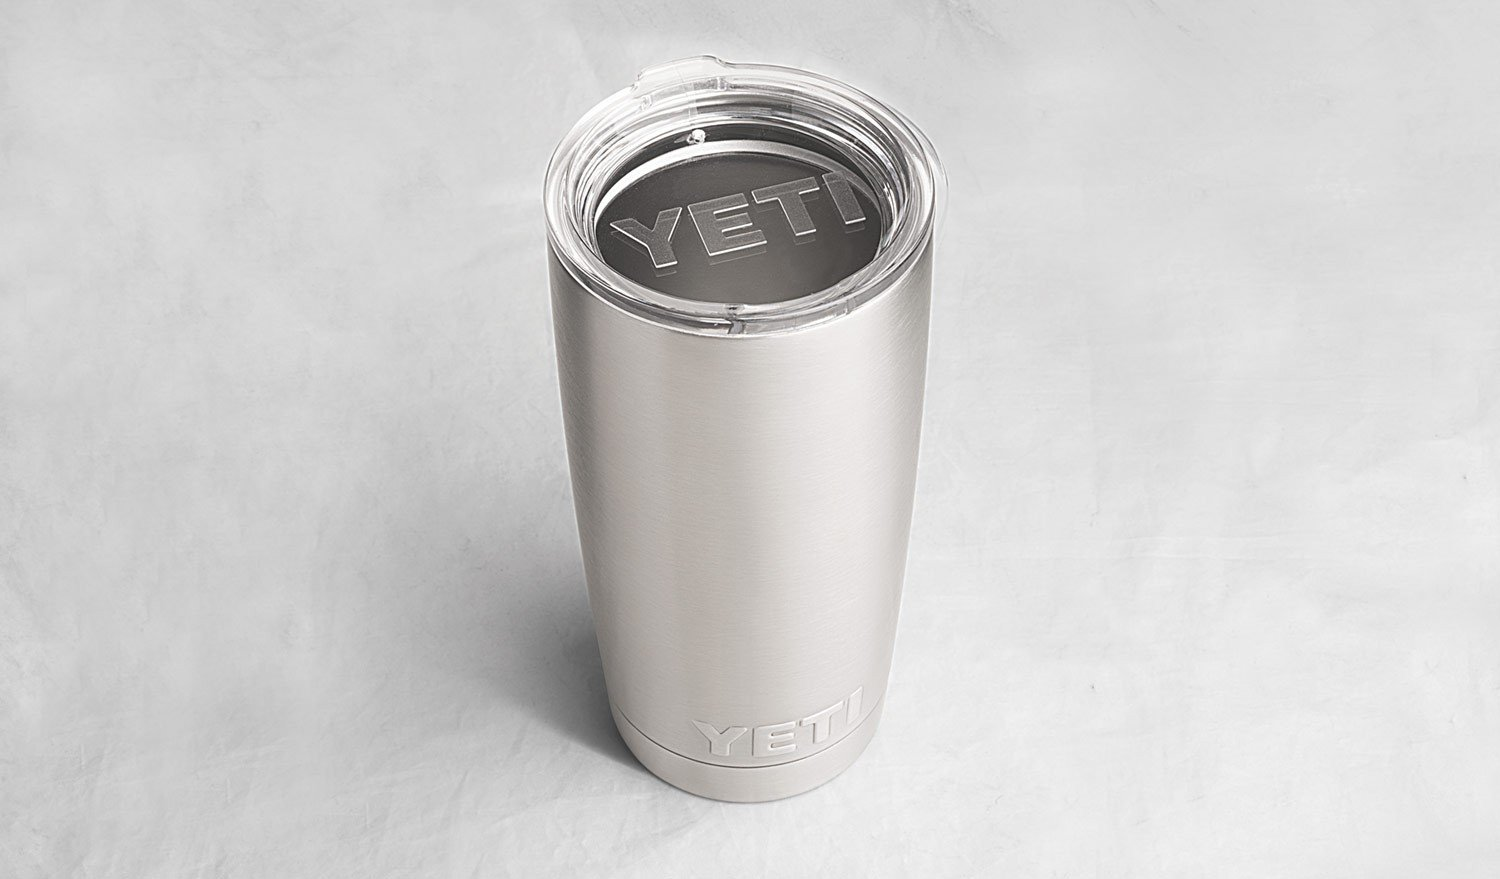 YETI Rambler 20 oz Stainless Steel Vacuum Insulated Tumbler with Lid (Stainless Steel) by YETI (Image #2)